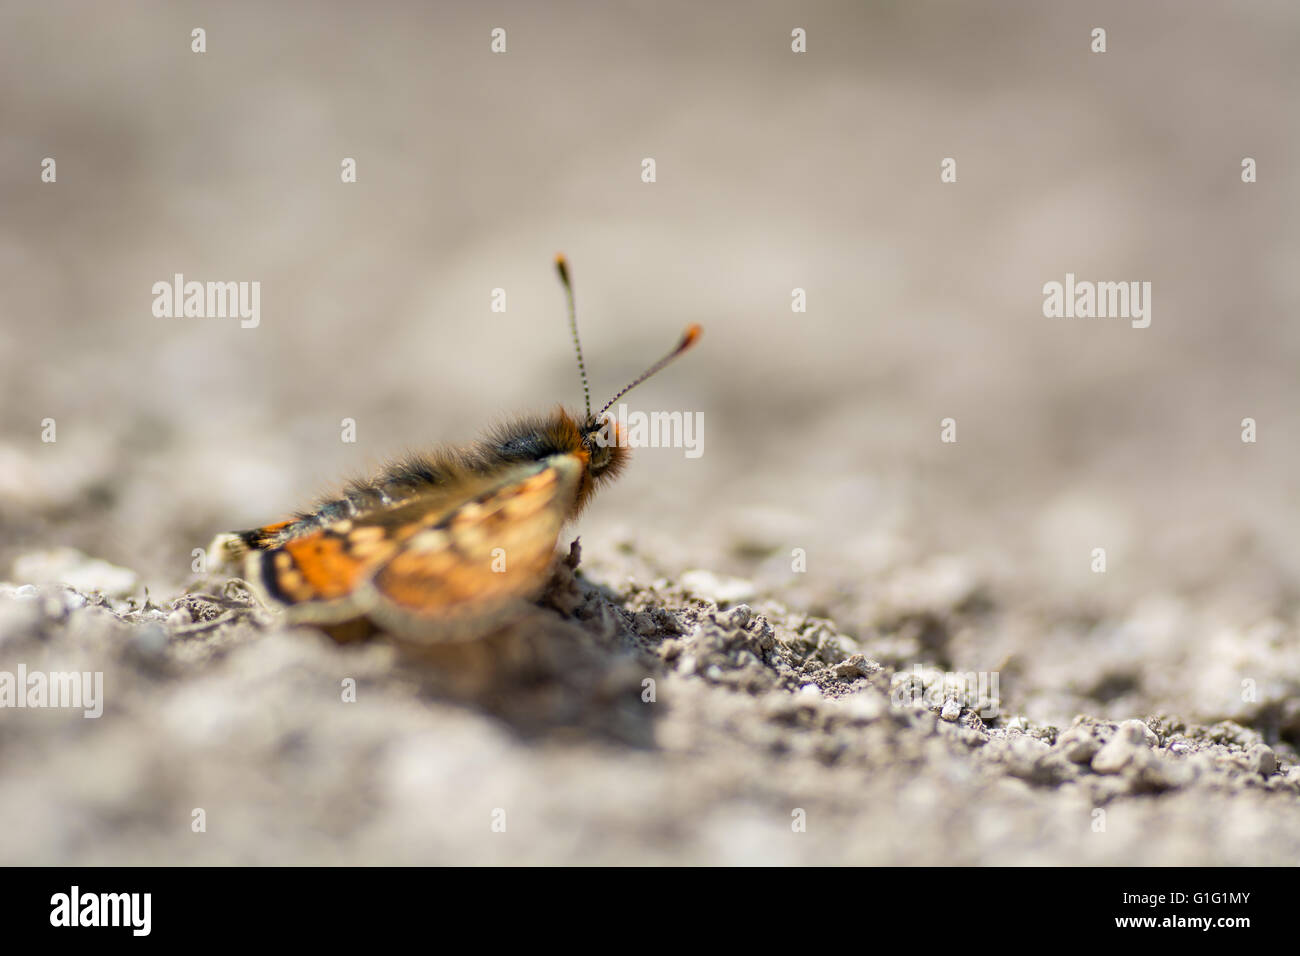 Marsh fritillary butterfly (Euphydryas aurinia) in profile. A scarce butterfly in the family Nymphalidae, at rest - Stock Image